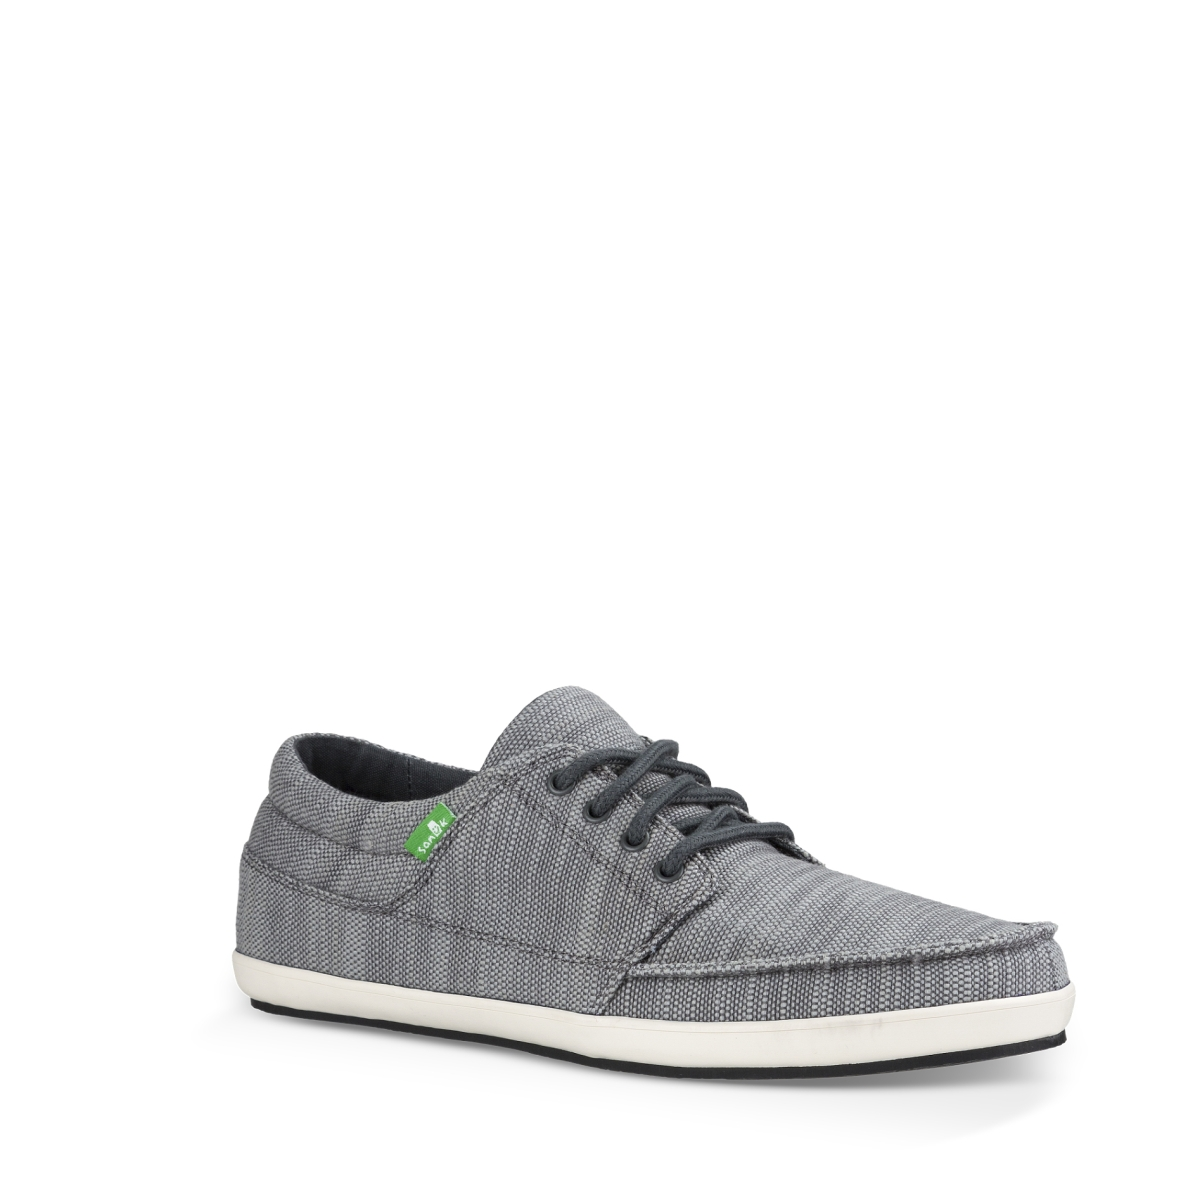 5a5cea6da09 Sanuk s New Shoes Might be the Most Comfortable on Earth - Men s Journal